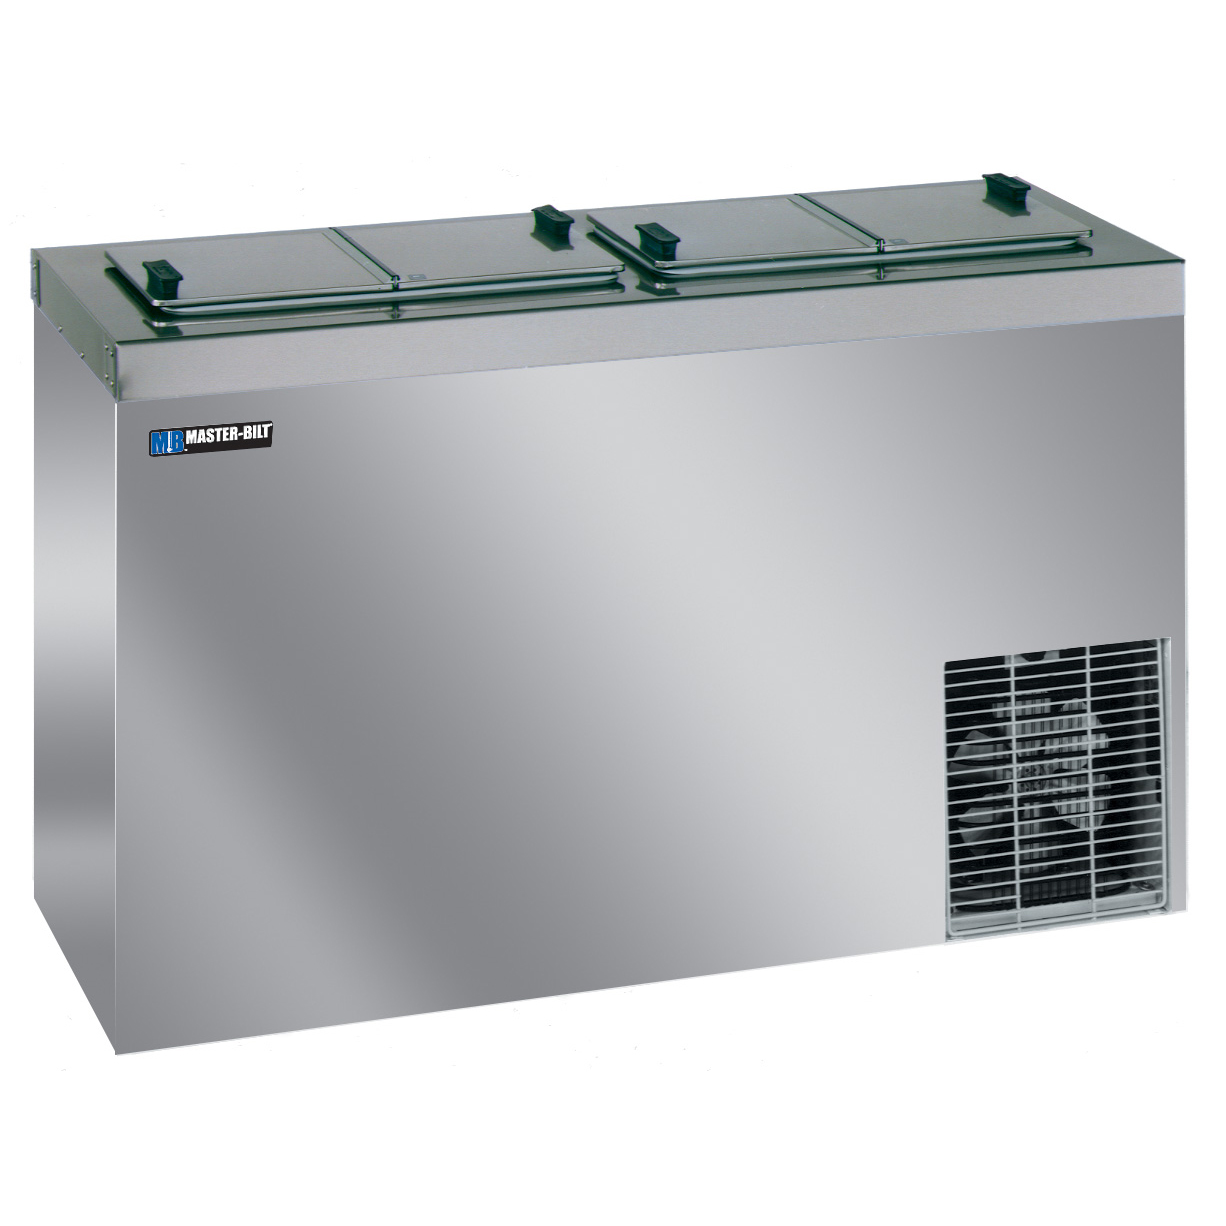 Master-Bilt Products DC-4SSE ice cream dipping cabinet